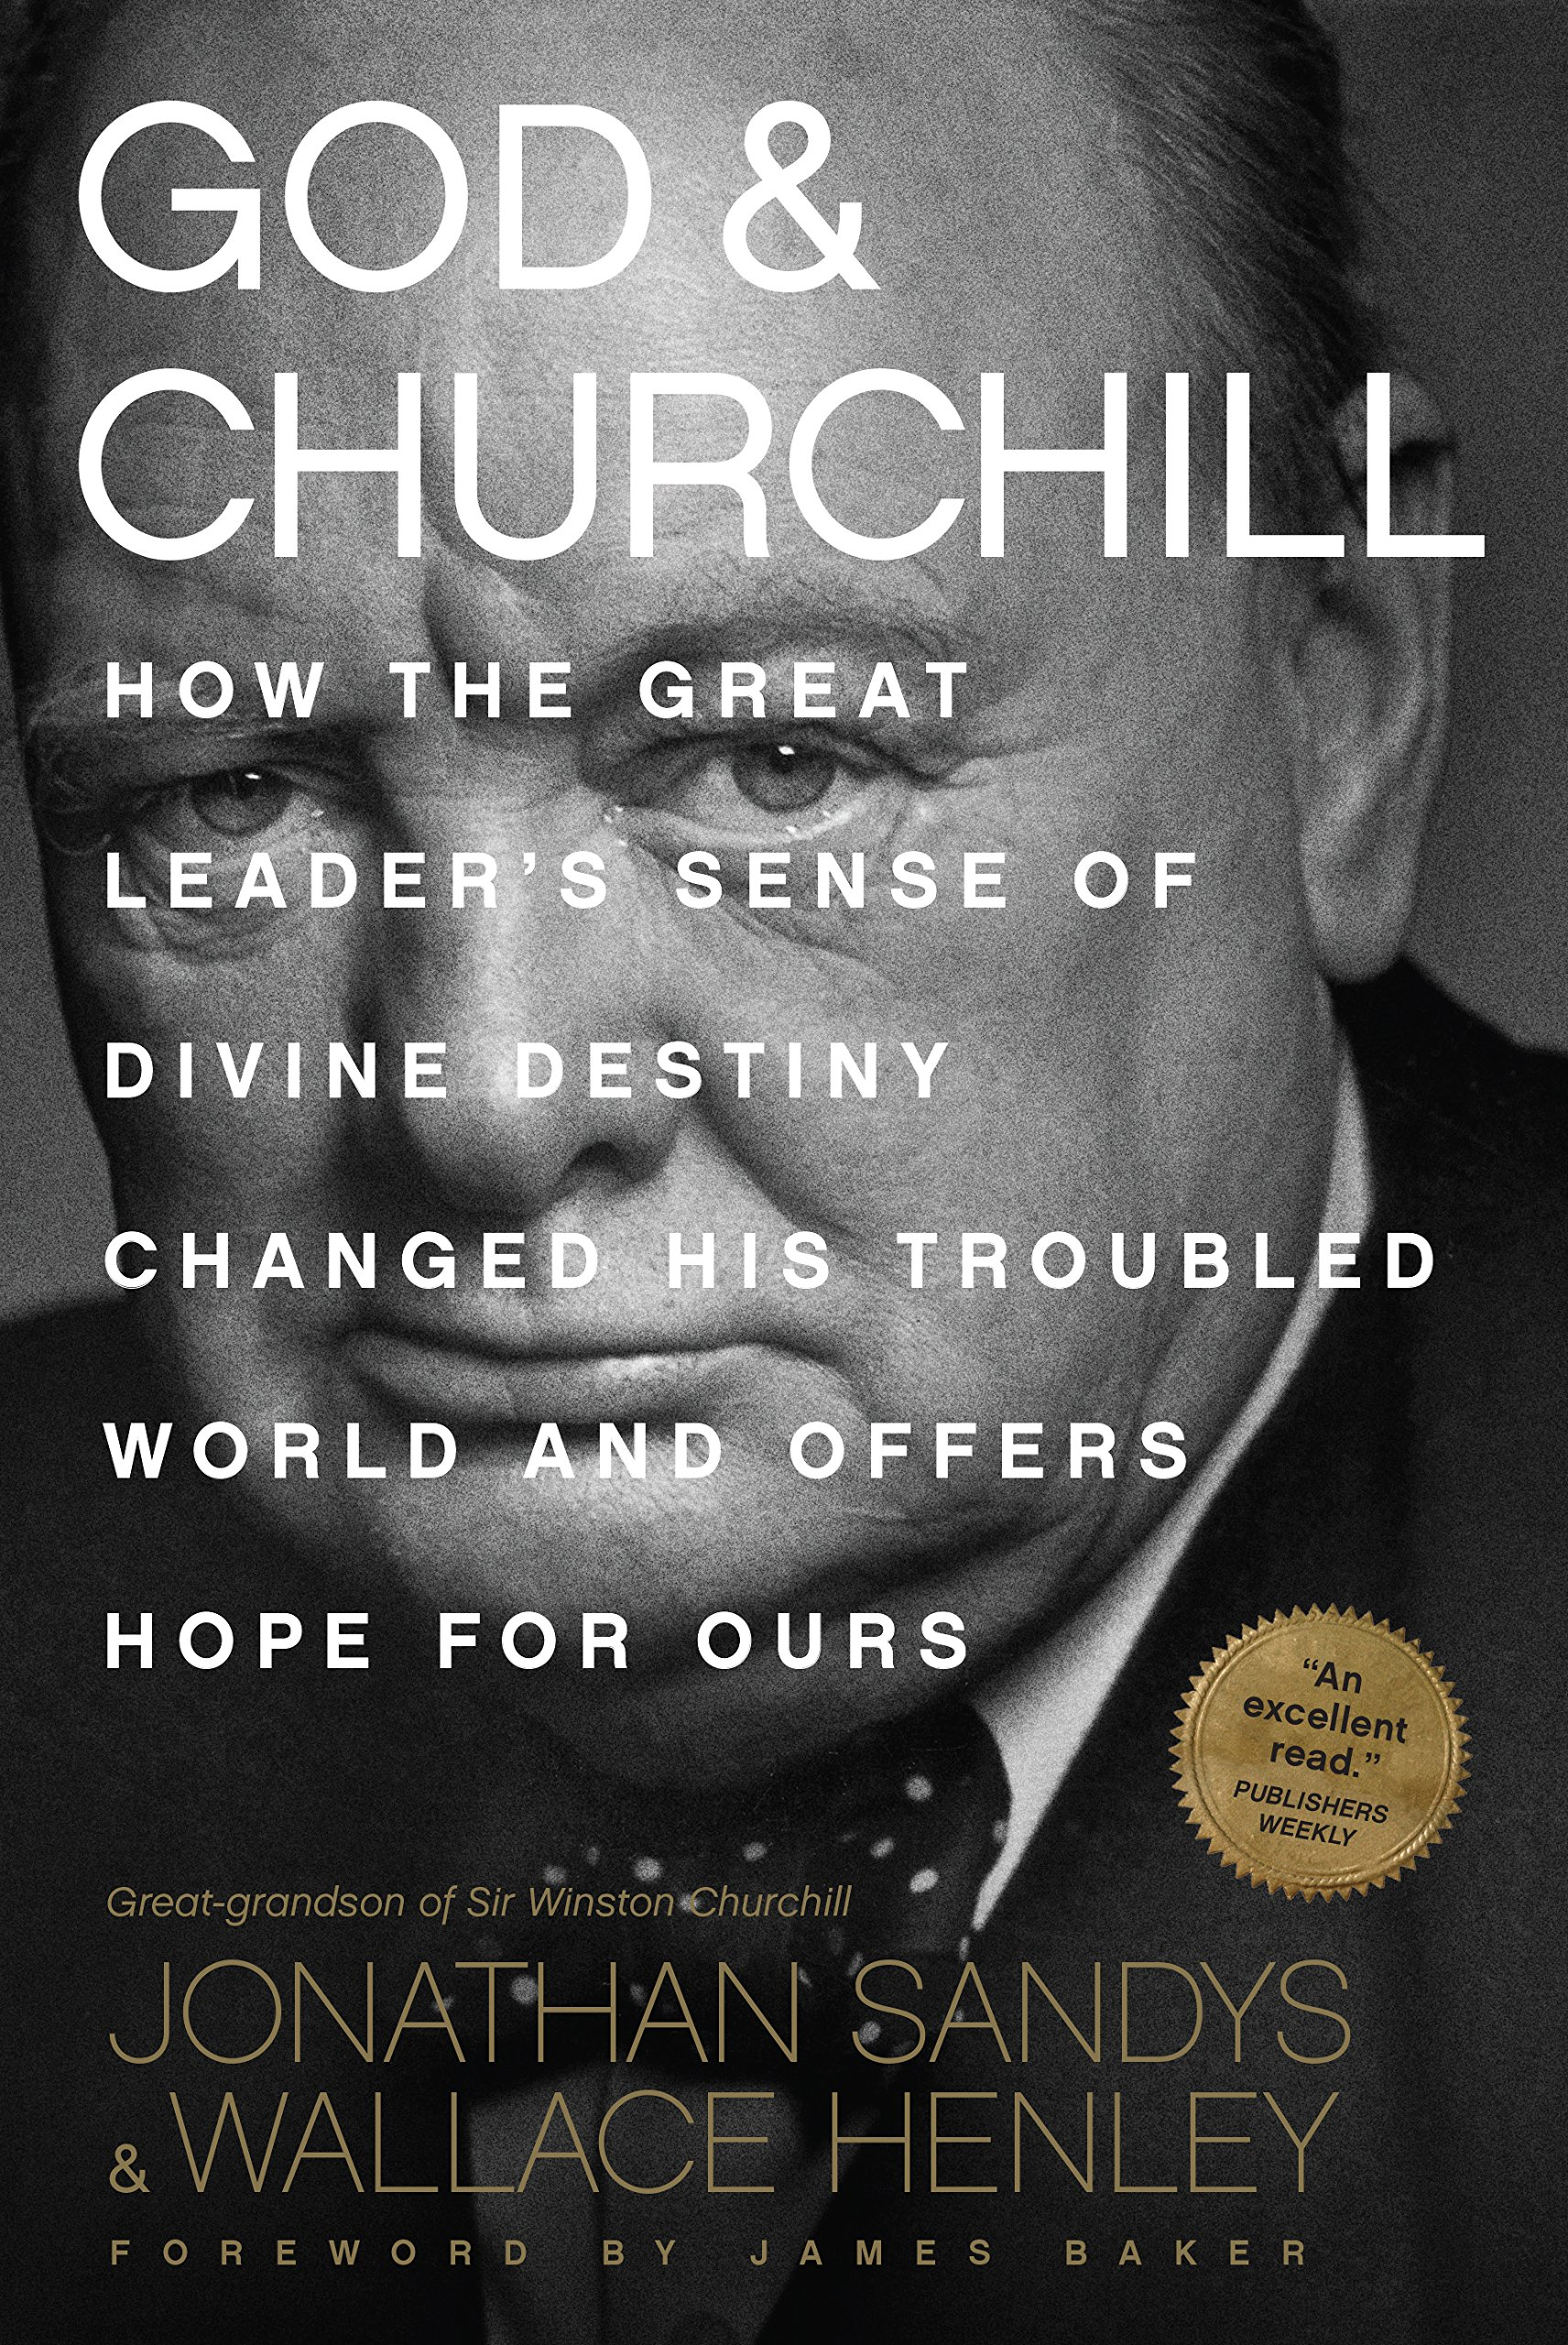 Download God & Churchill: How the Great Leader's Sense of Divine Destiny Changed His Troubled World and Offers Hope for Ours ebook